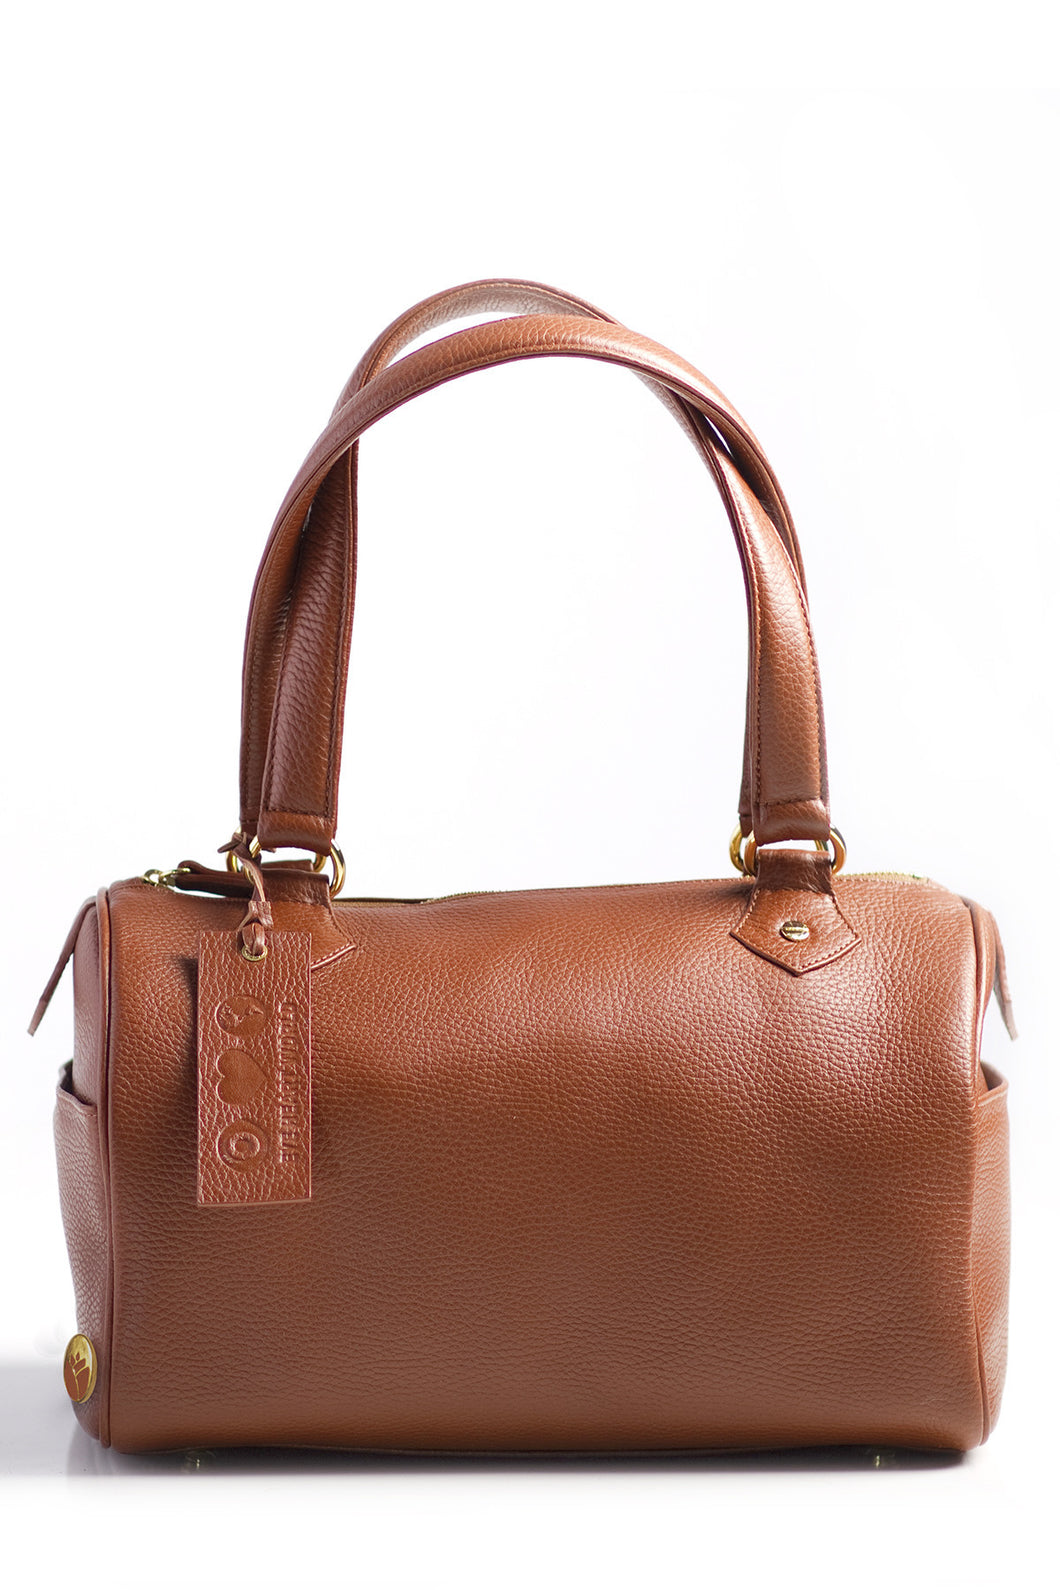 Classic Cognac Satchel - Good Cloth